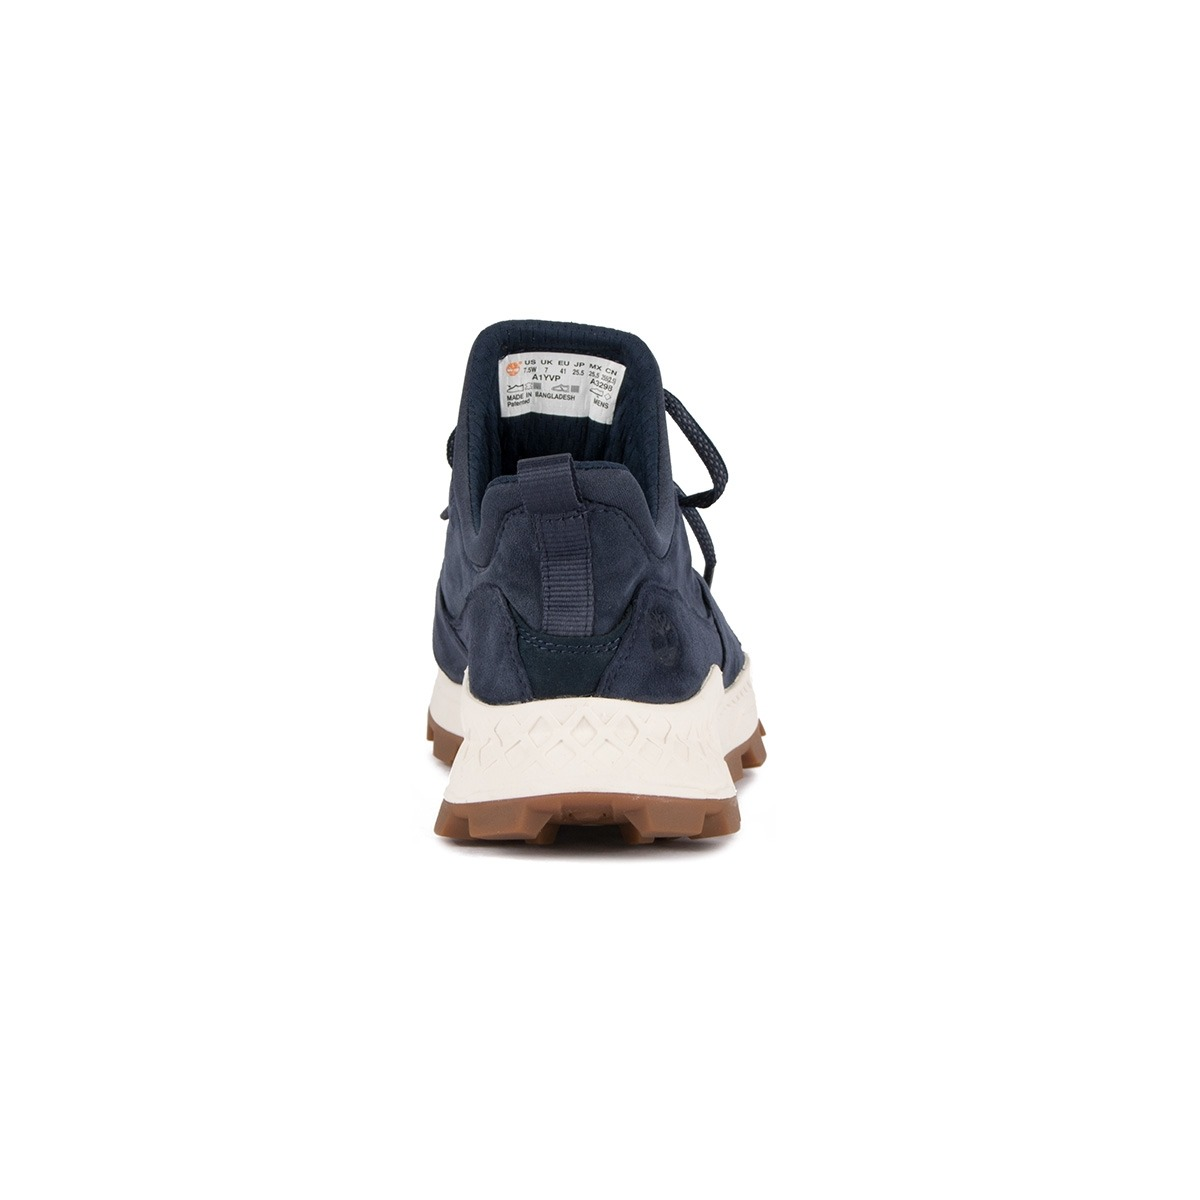 Timberland Bota Brooklyn Oxford Navy Suede Marino Hombre